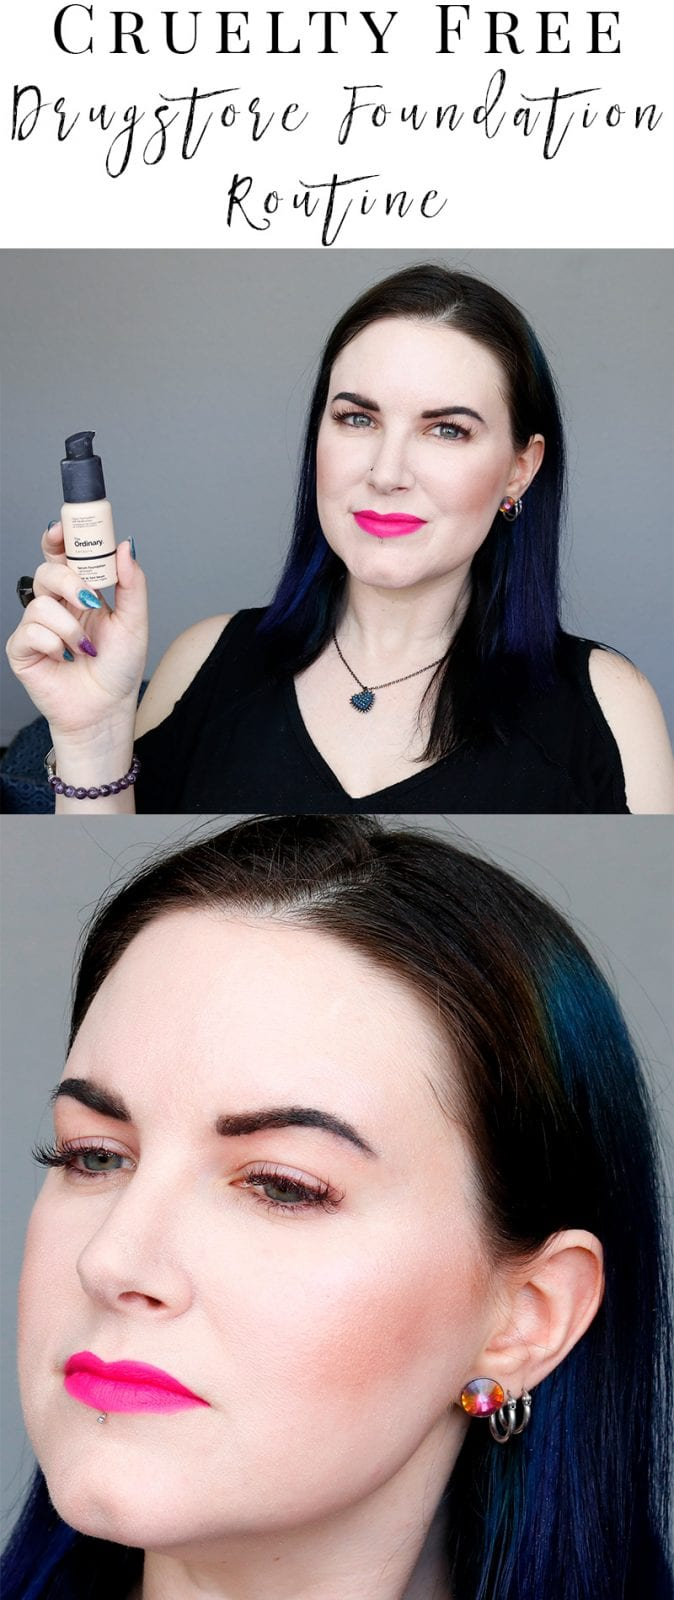 I'm sharing my cruelty free drugstore foundation routine featuring Milani, Nyx and the Ordinary. It's perfect for my pale skin. I have dry skin issues, so I'm glad that I figured out this combination for my skin type. It works for me in hot humid climates and hot dry climates, lasting 14 or more hours.